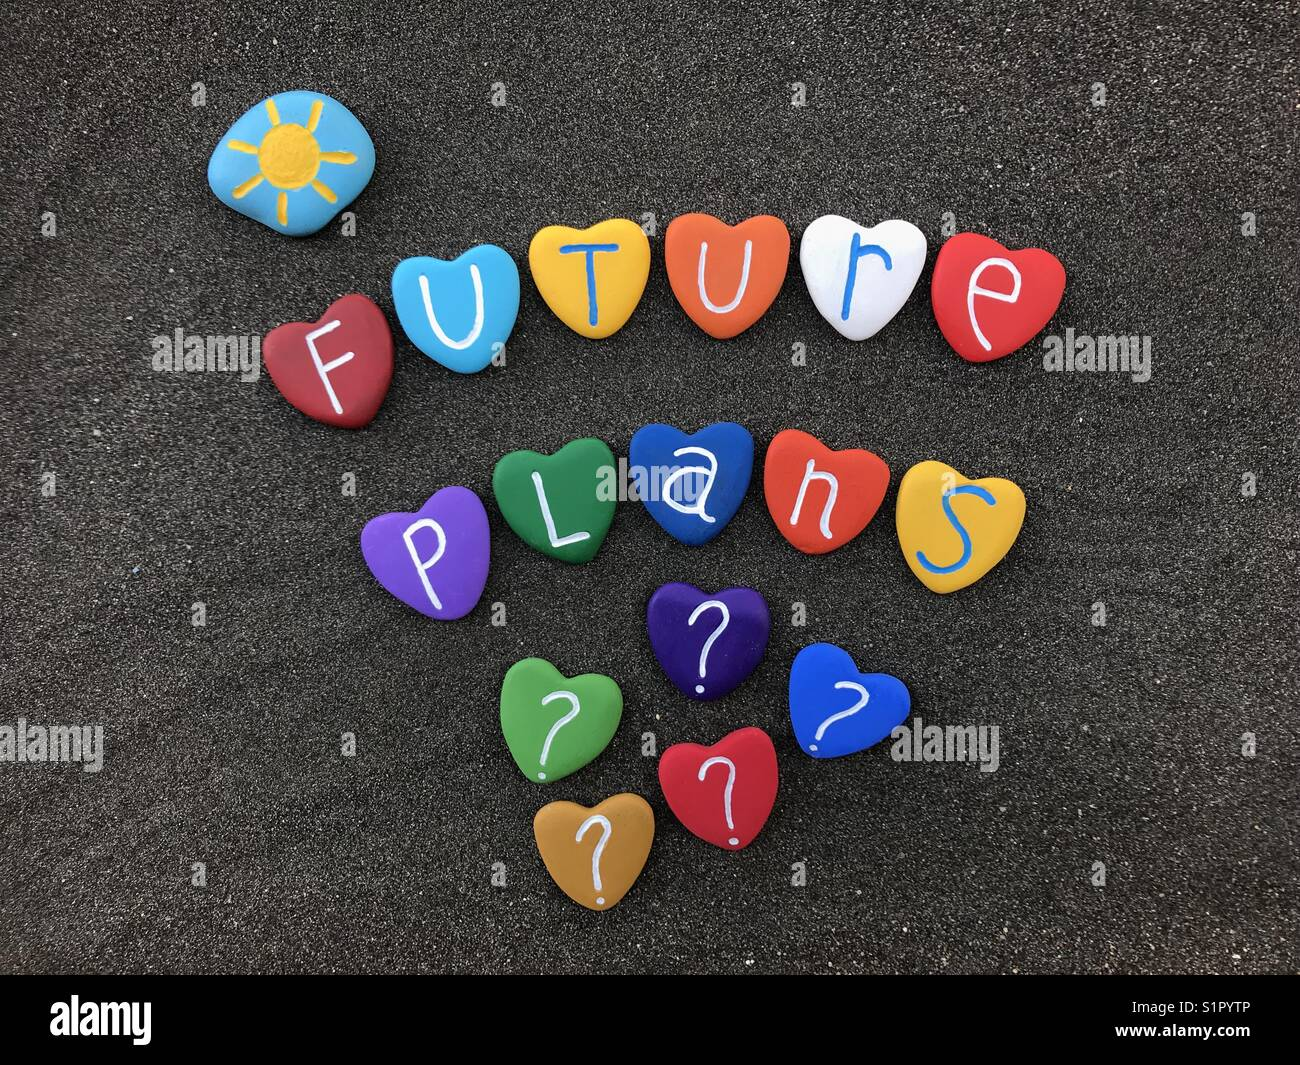 Future plans and question marks - Stock Image